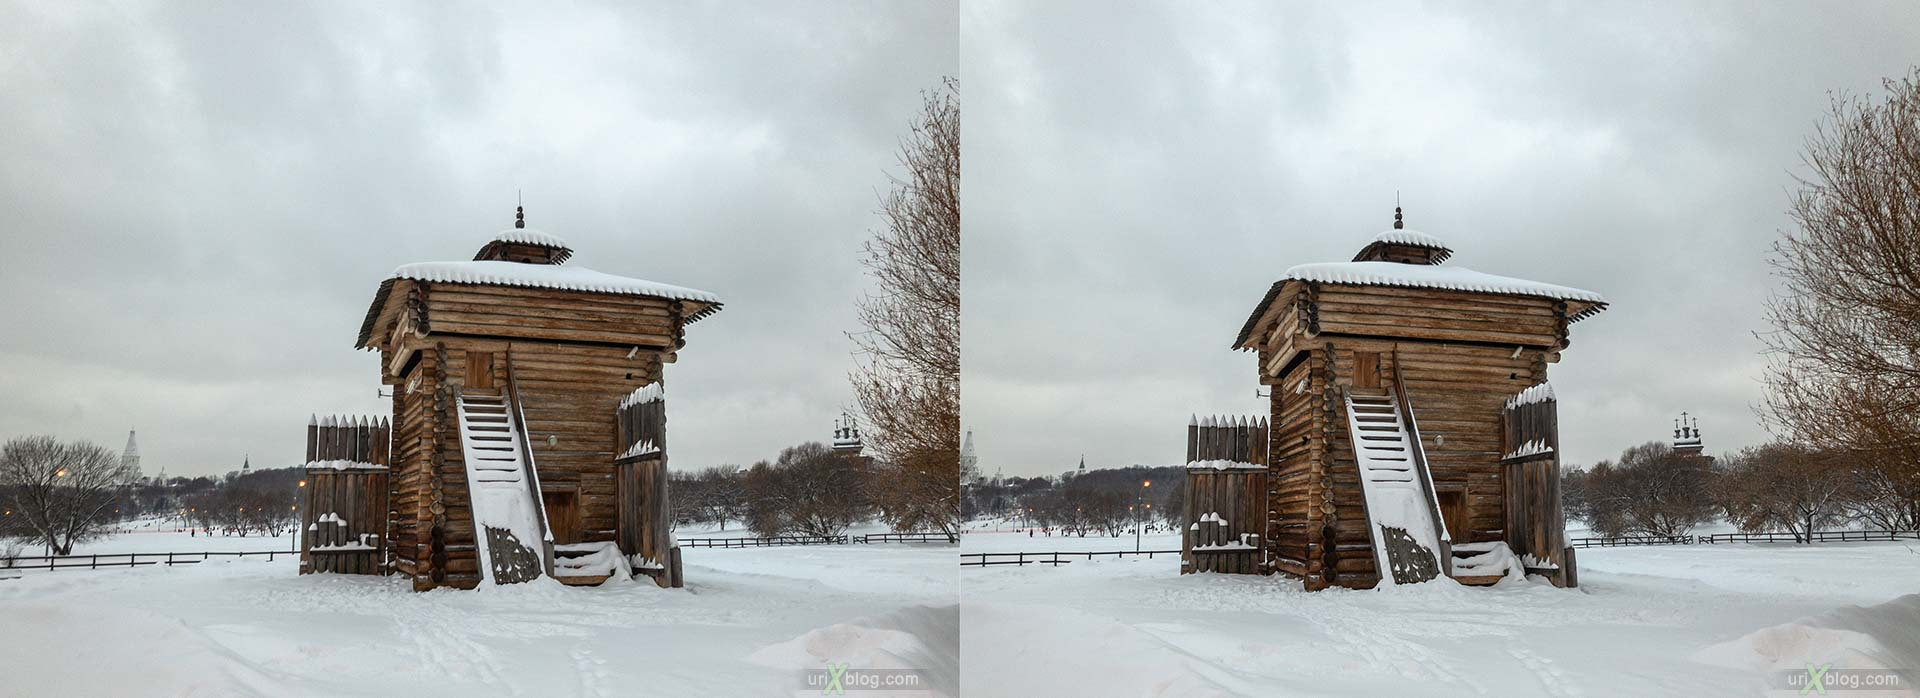 Russian Wooden Architecture, Tower of Bratsk prison, Kolomenskoye, park, wooden building, winter, snow, Moscow, Russia, 3D, stereo pair, cross-eyed, crossview, cross view stereo pair, stereoscopic